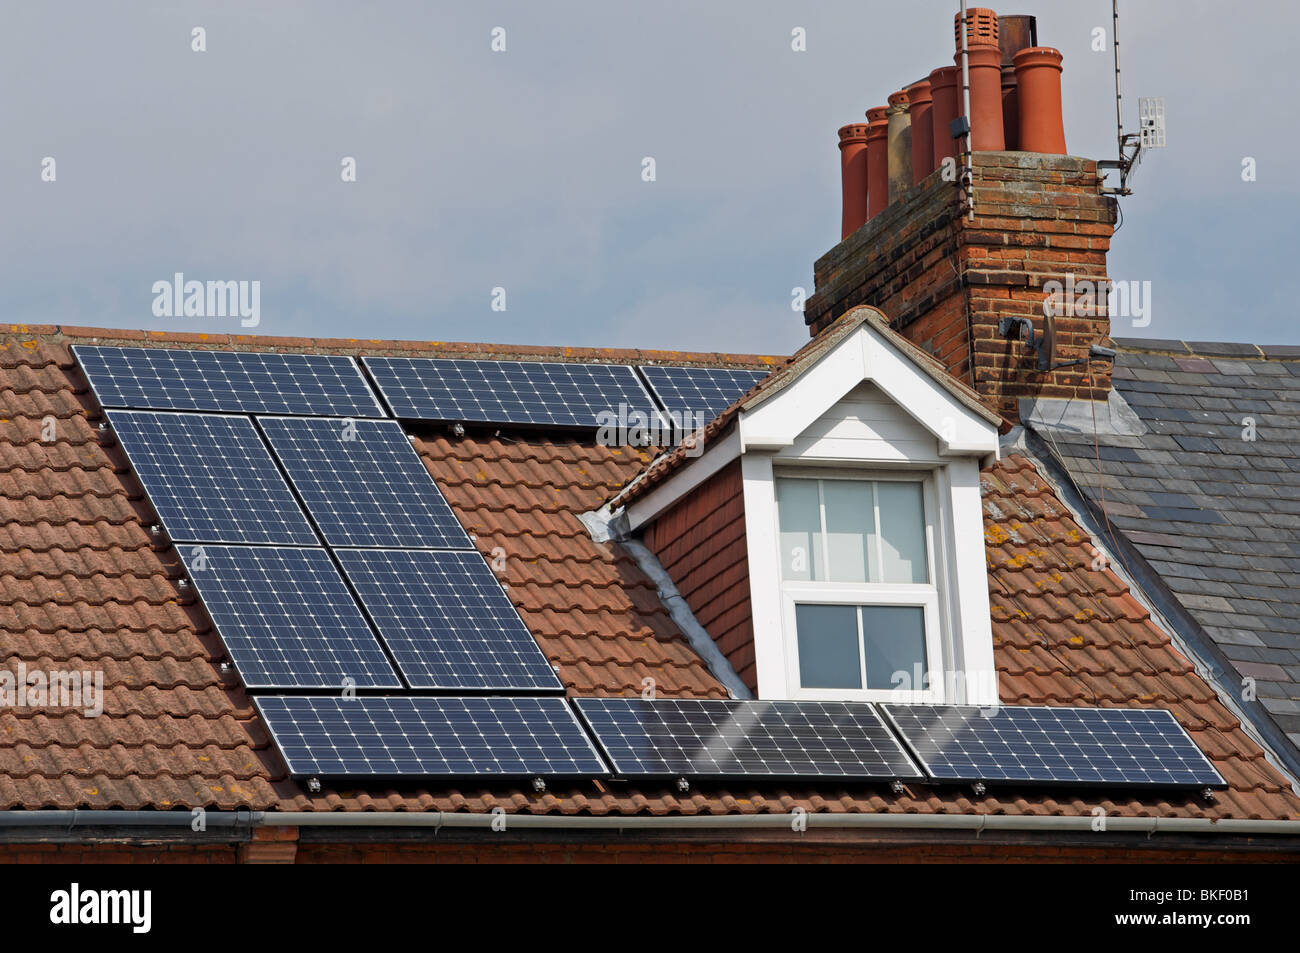 Solar Panels Fitted To The Roof Of A Uk Residential